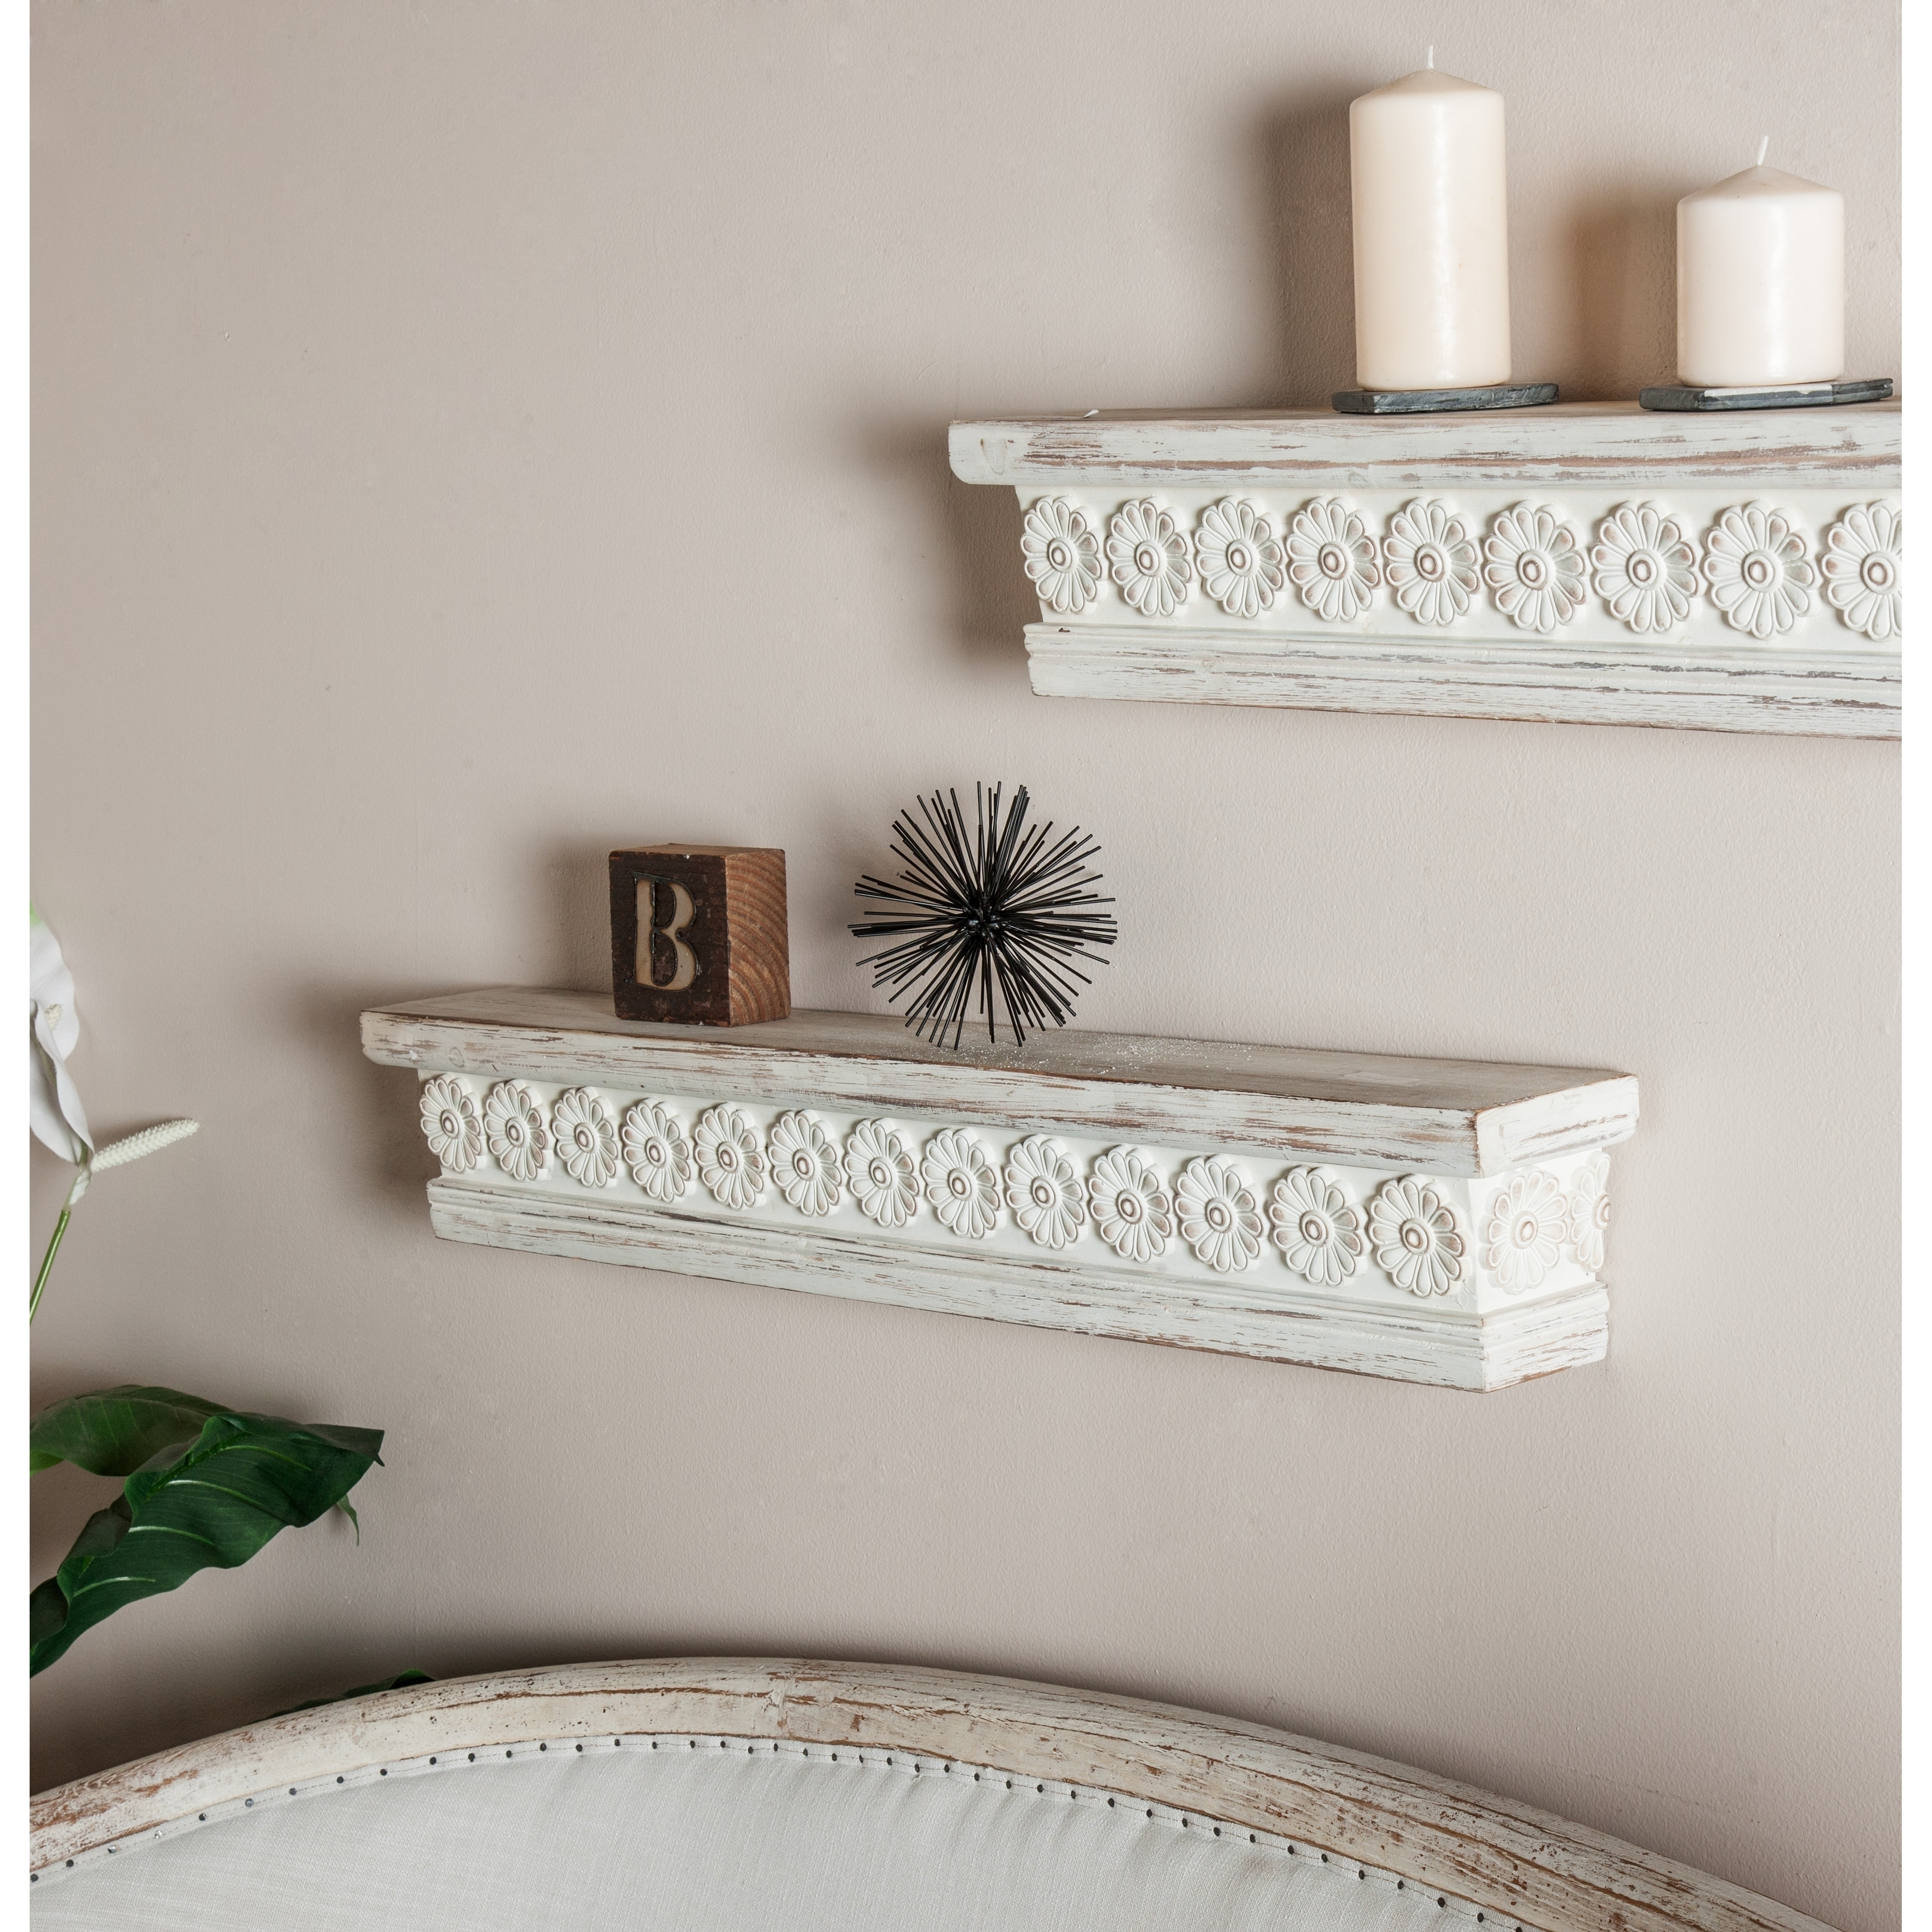 Details About Rustic 6 X 36 Inch Distressed White Wooden Wall Shelf By Studio 350